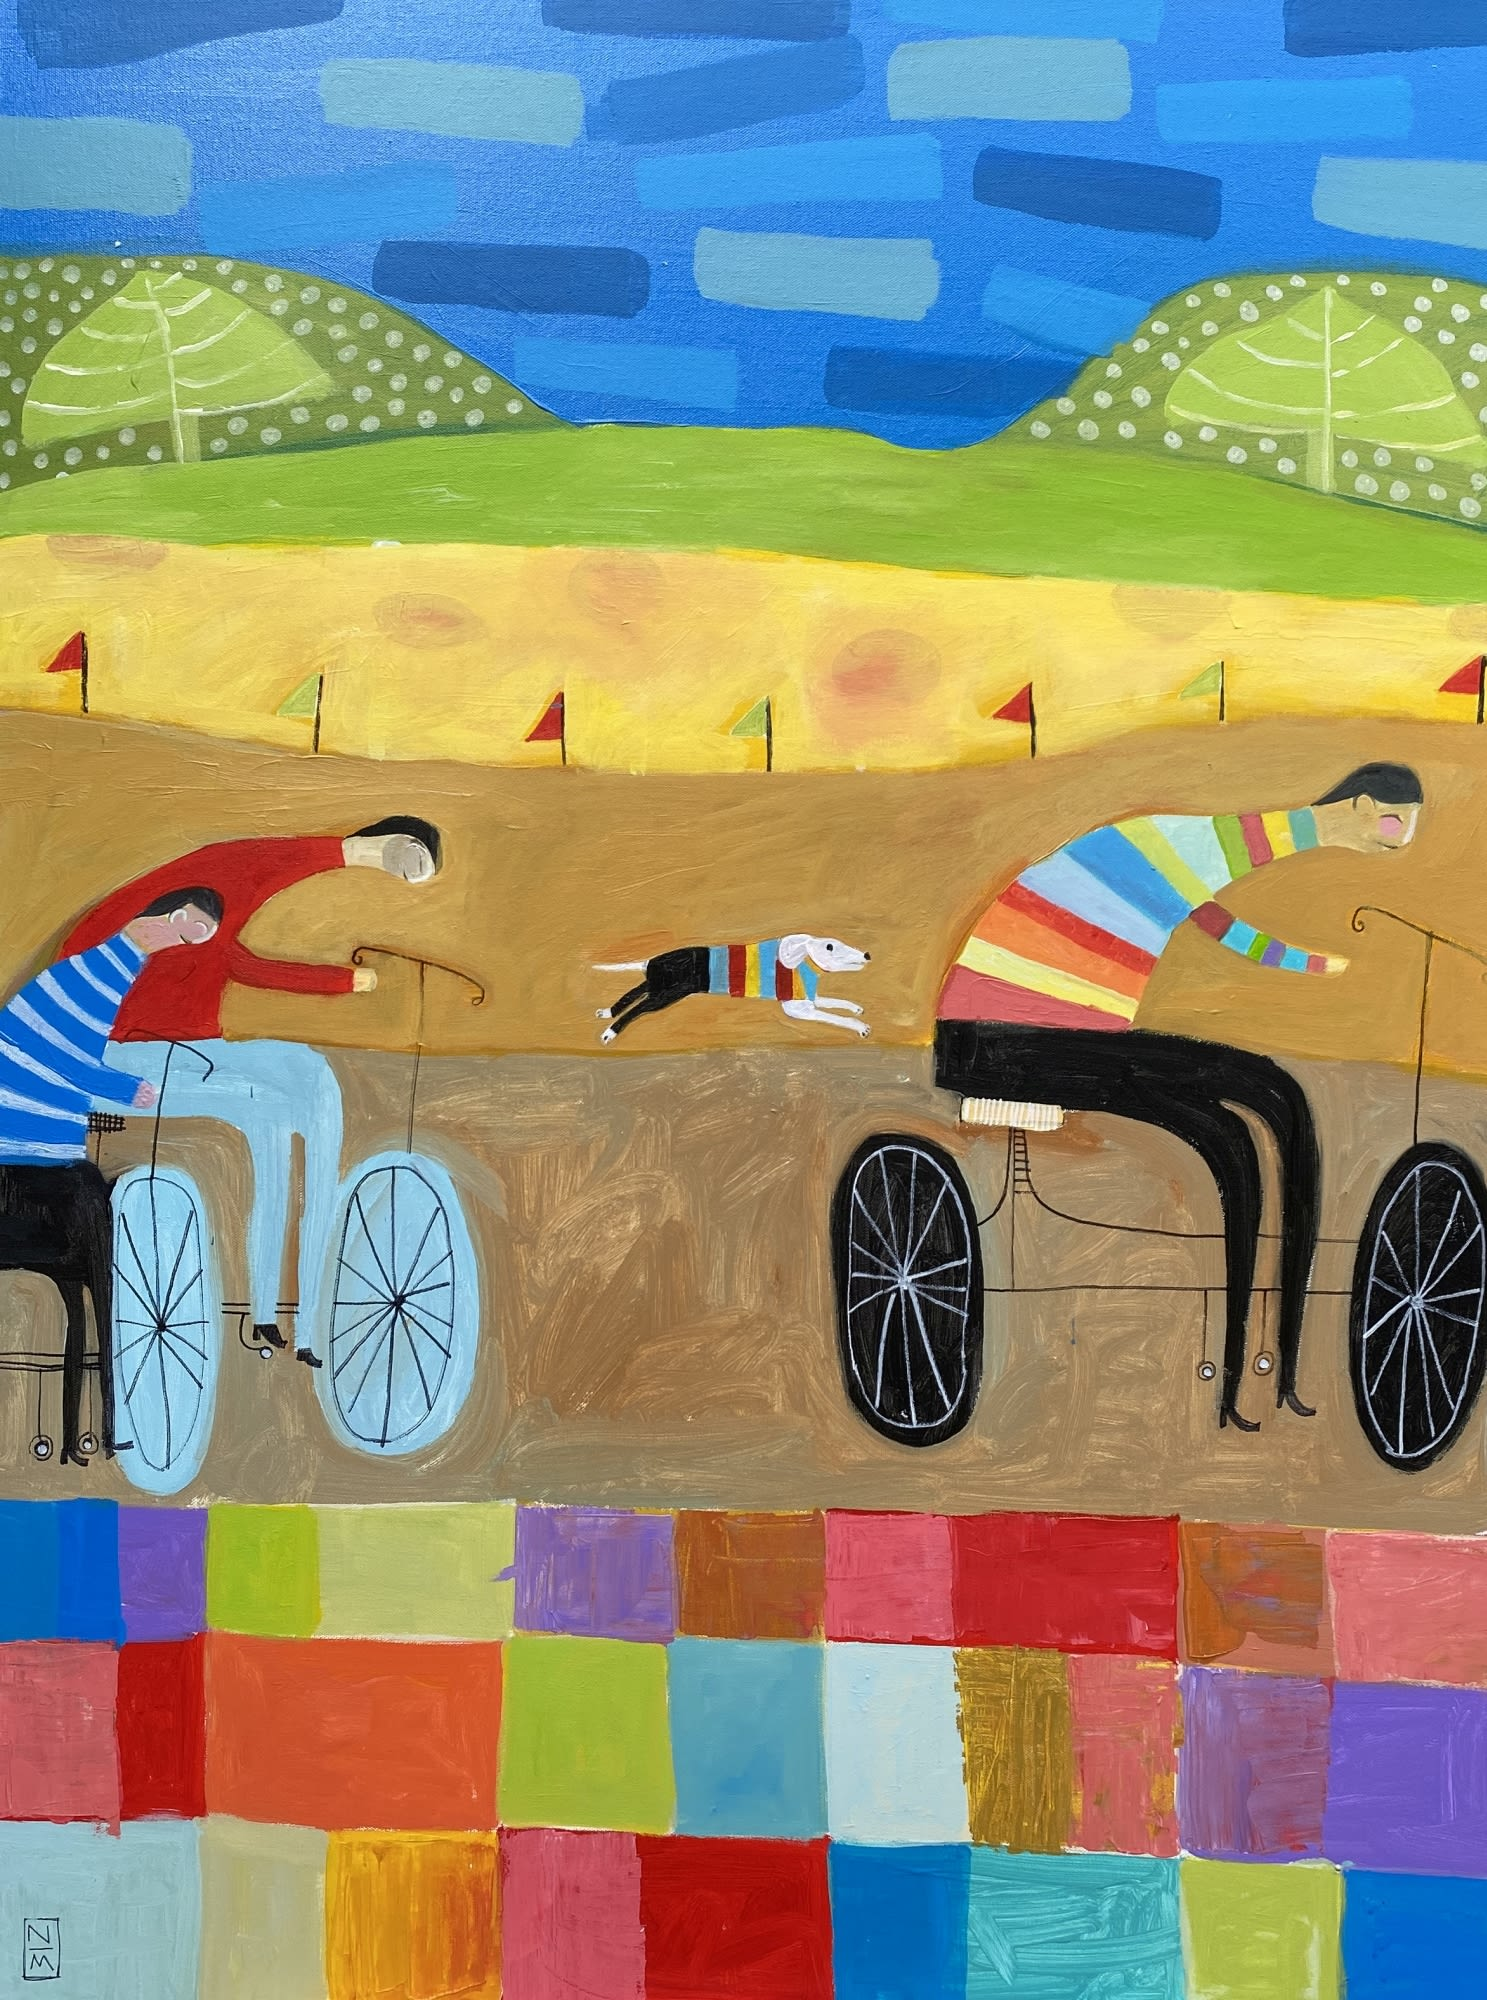 'The Race' by Nathaniel Mather at Gallery 133